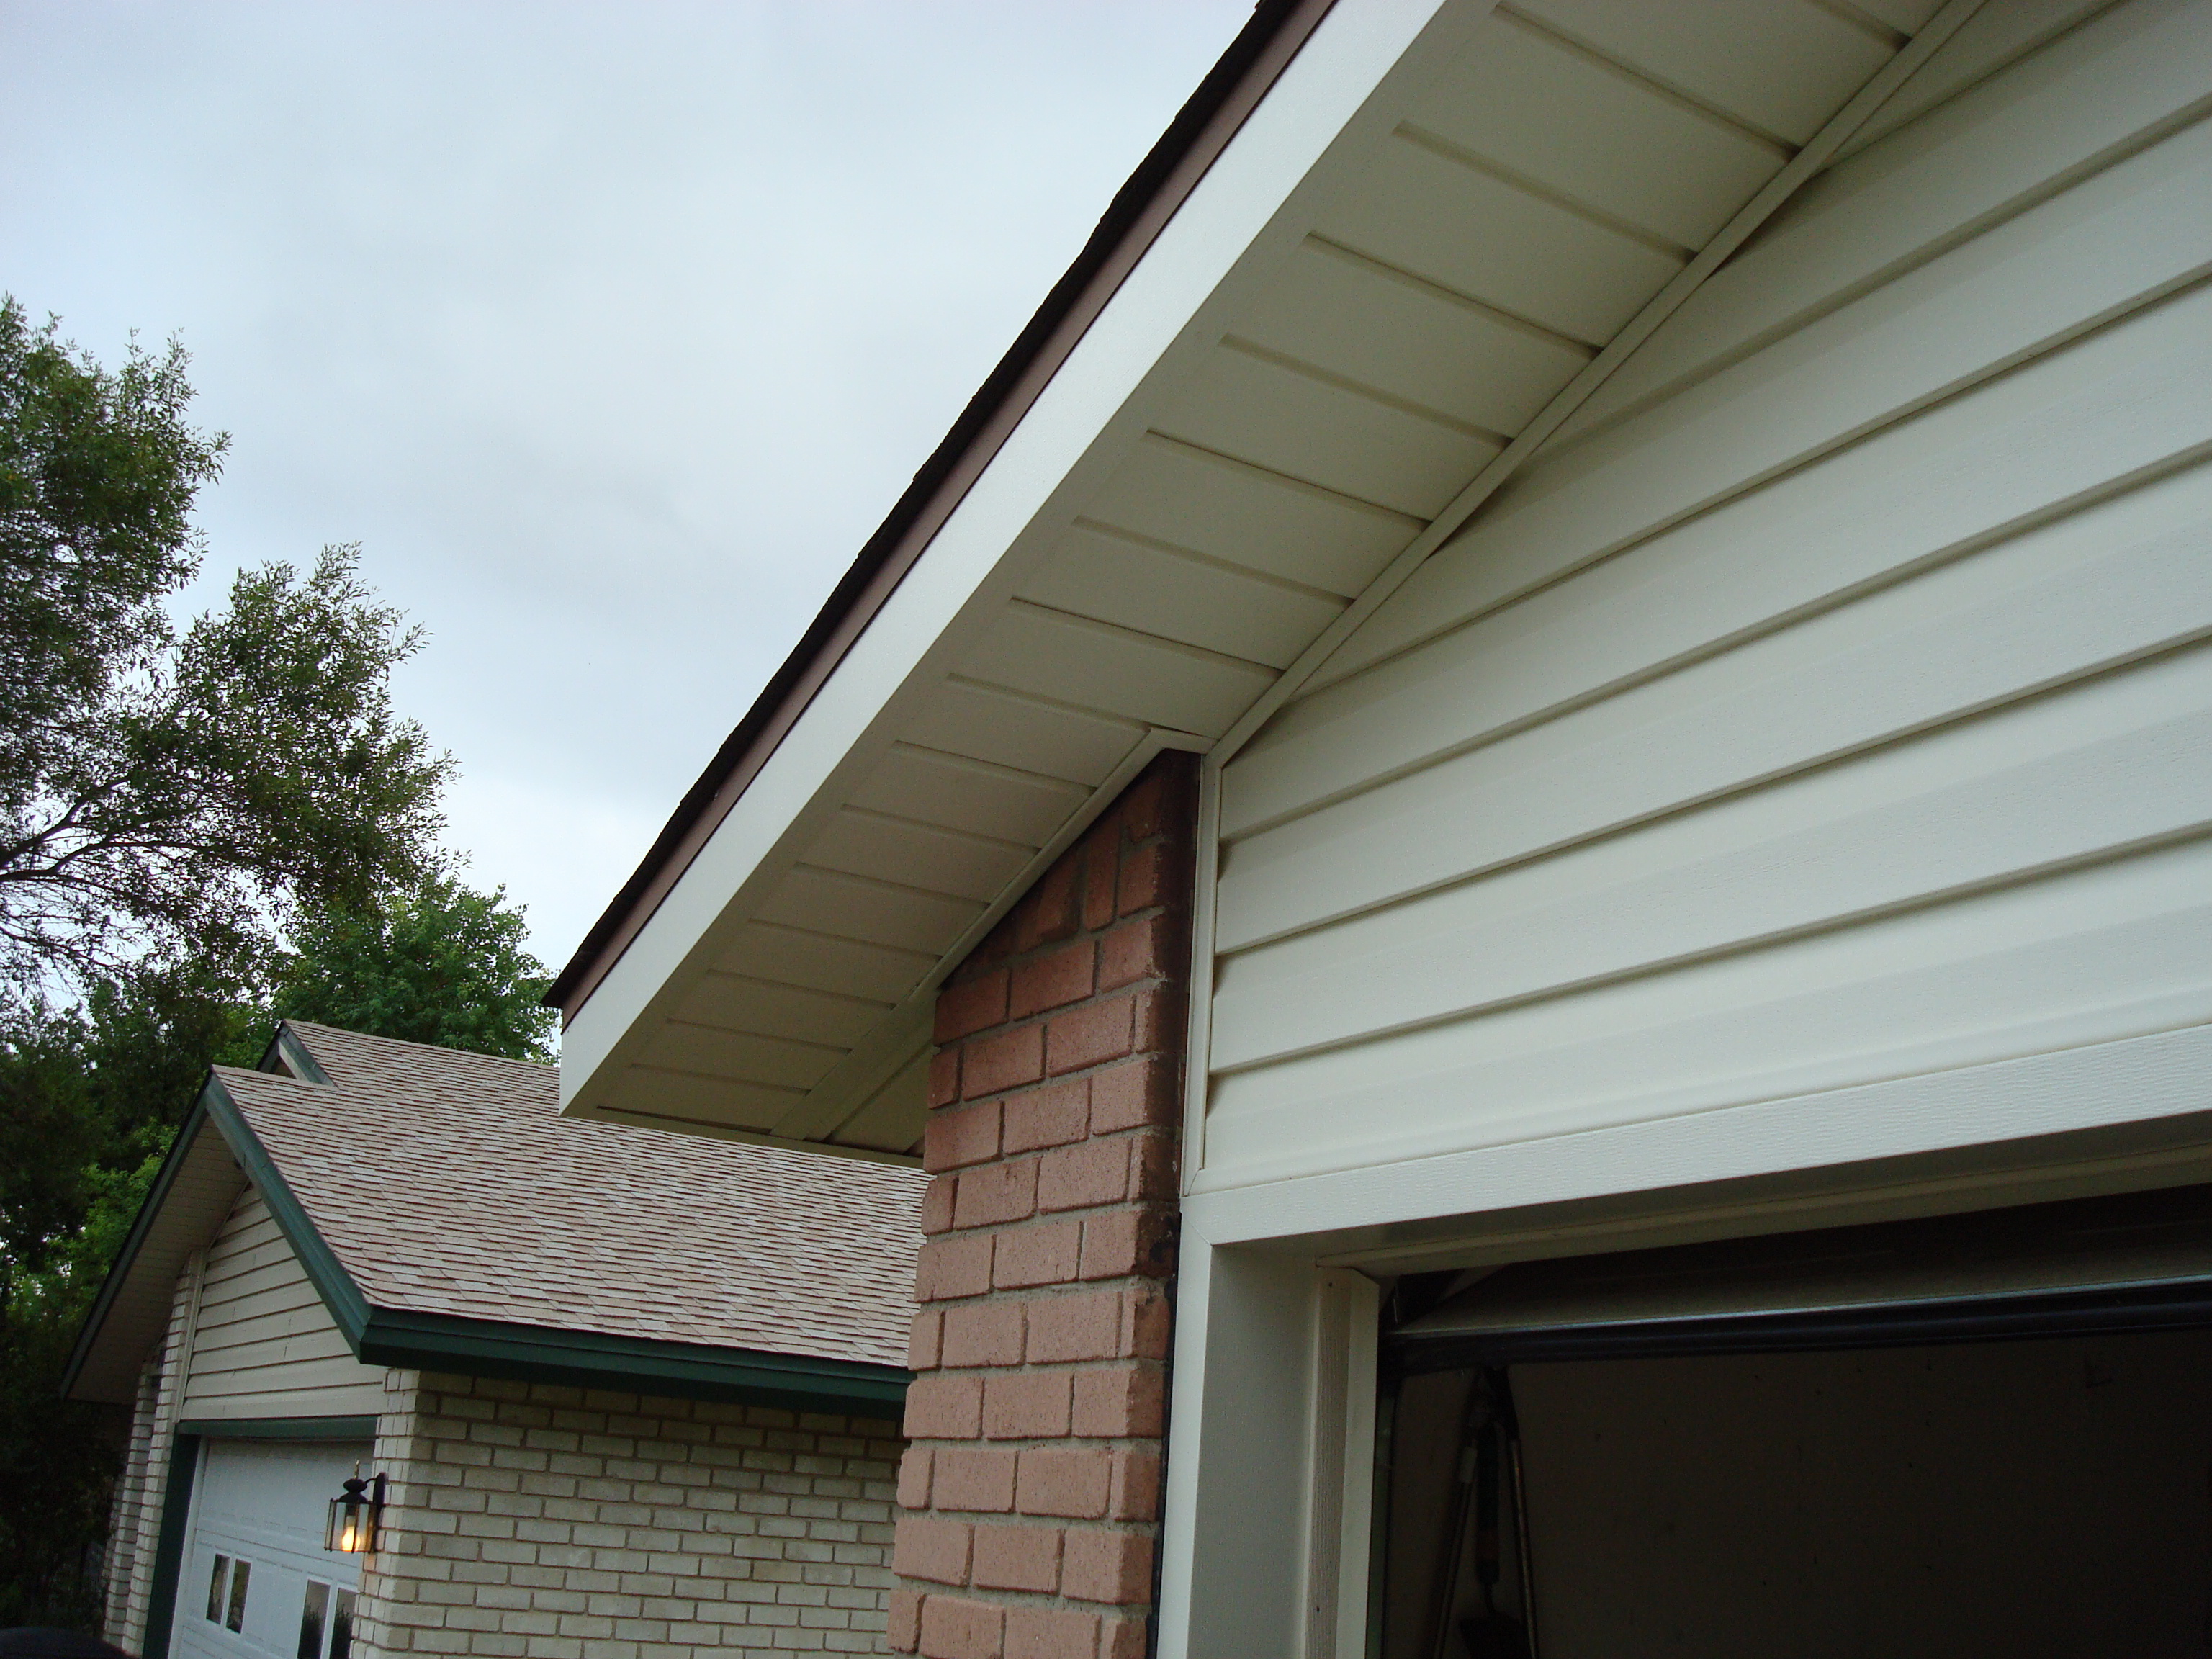 Eaves, and overhangs after repair